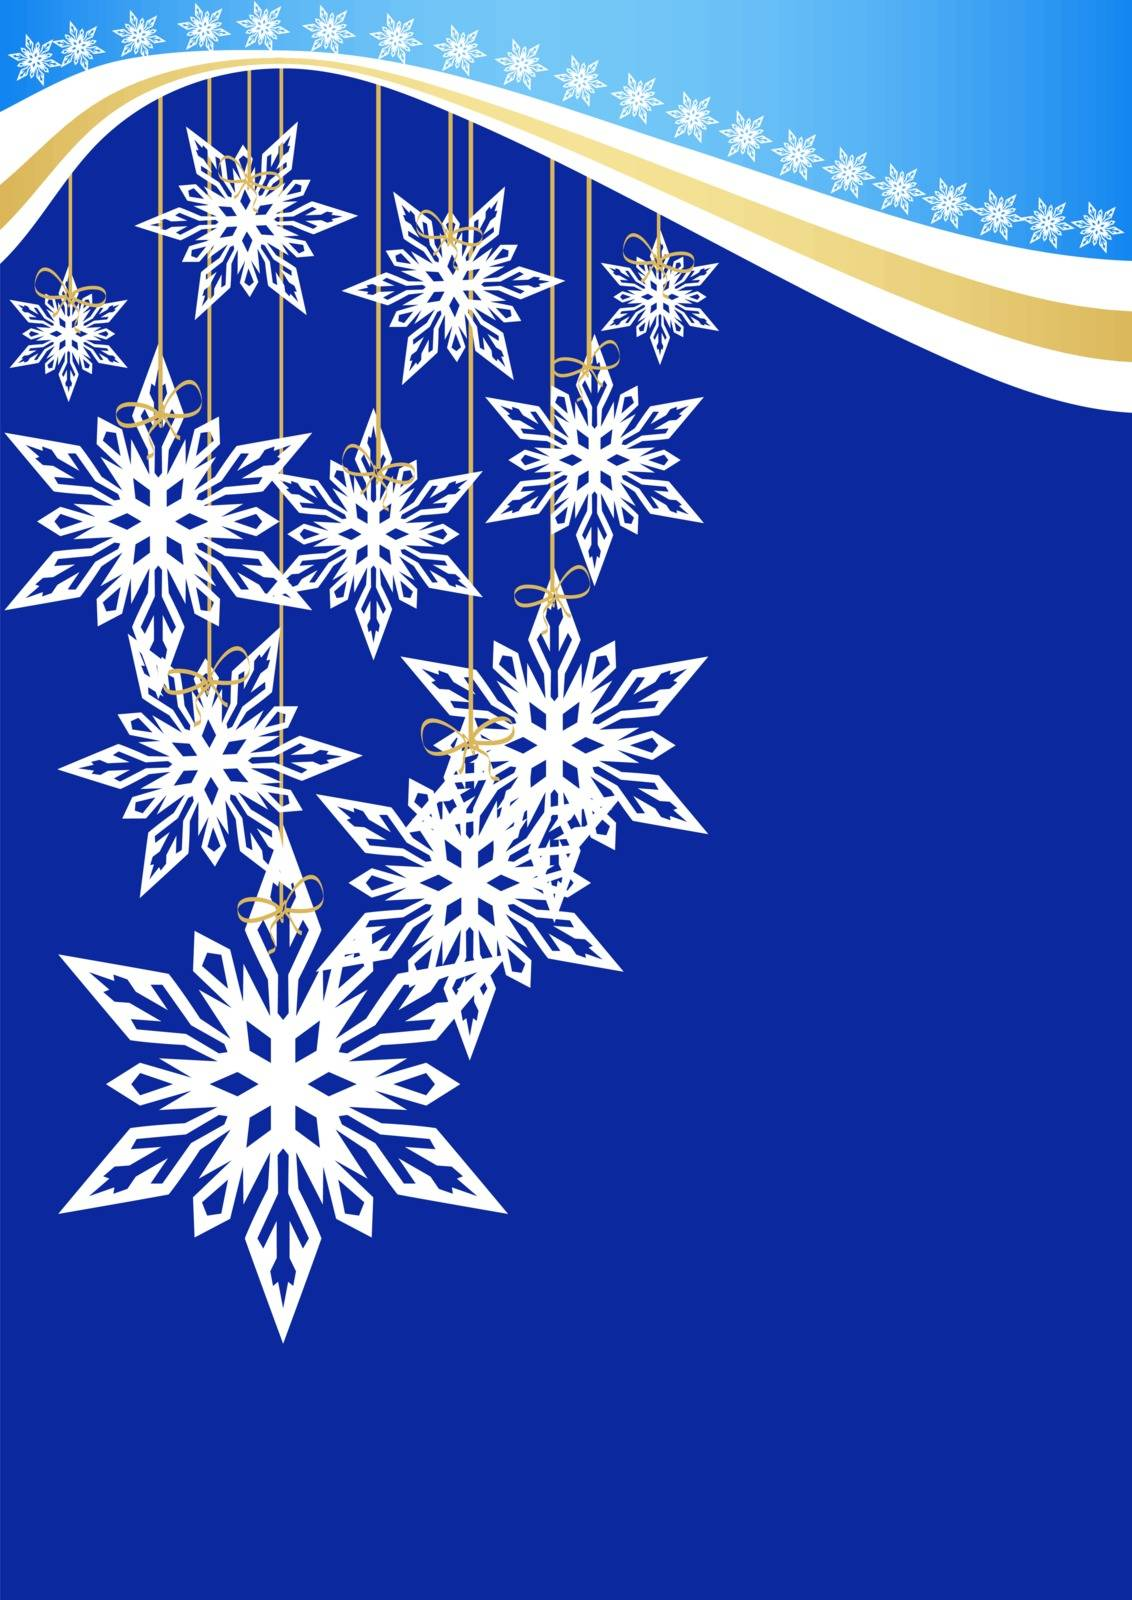 Greeting card for Christmas and New Year with snowflakes and place for text